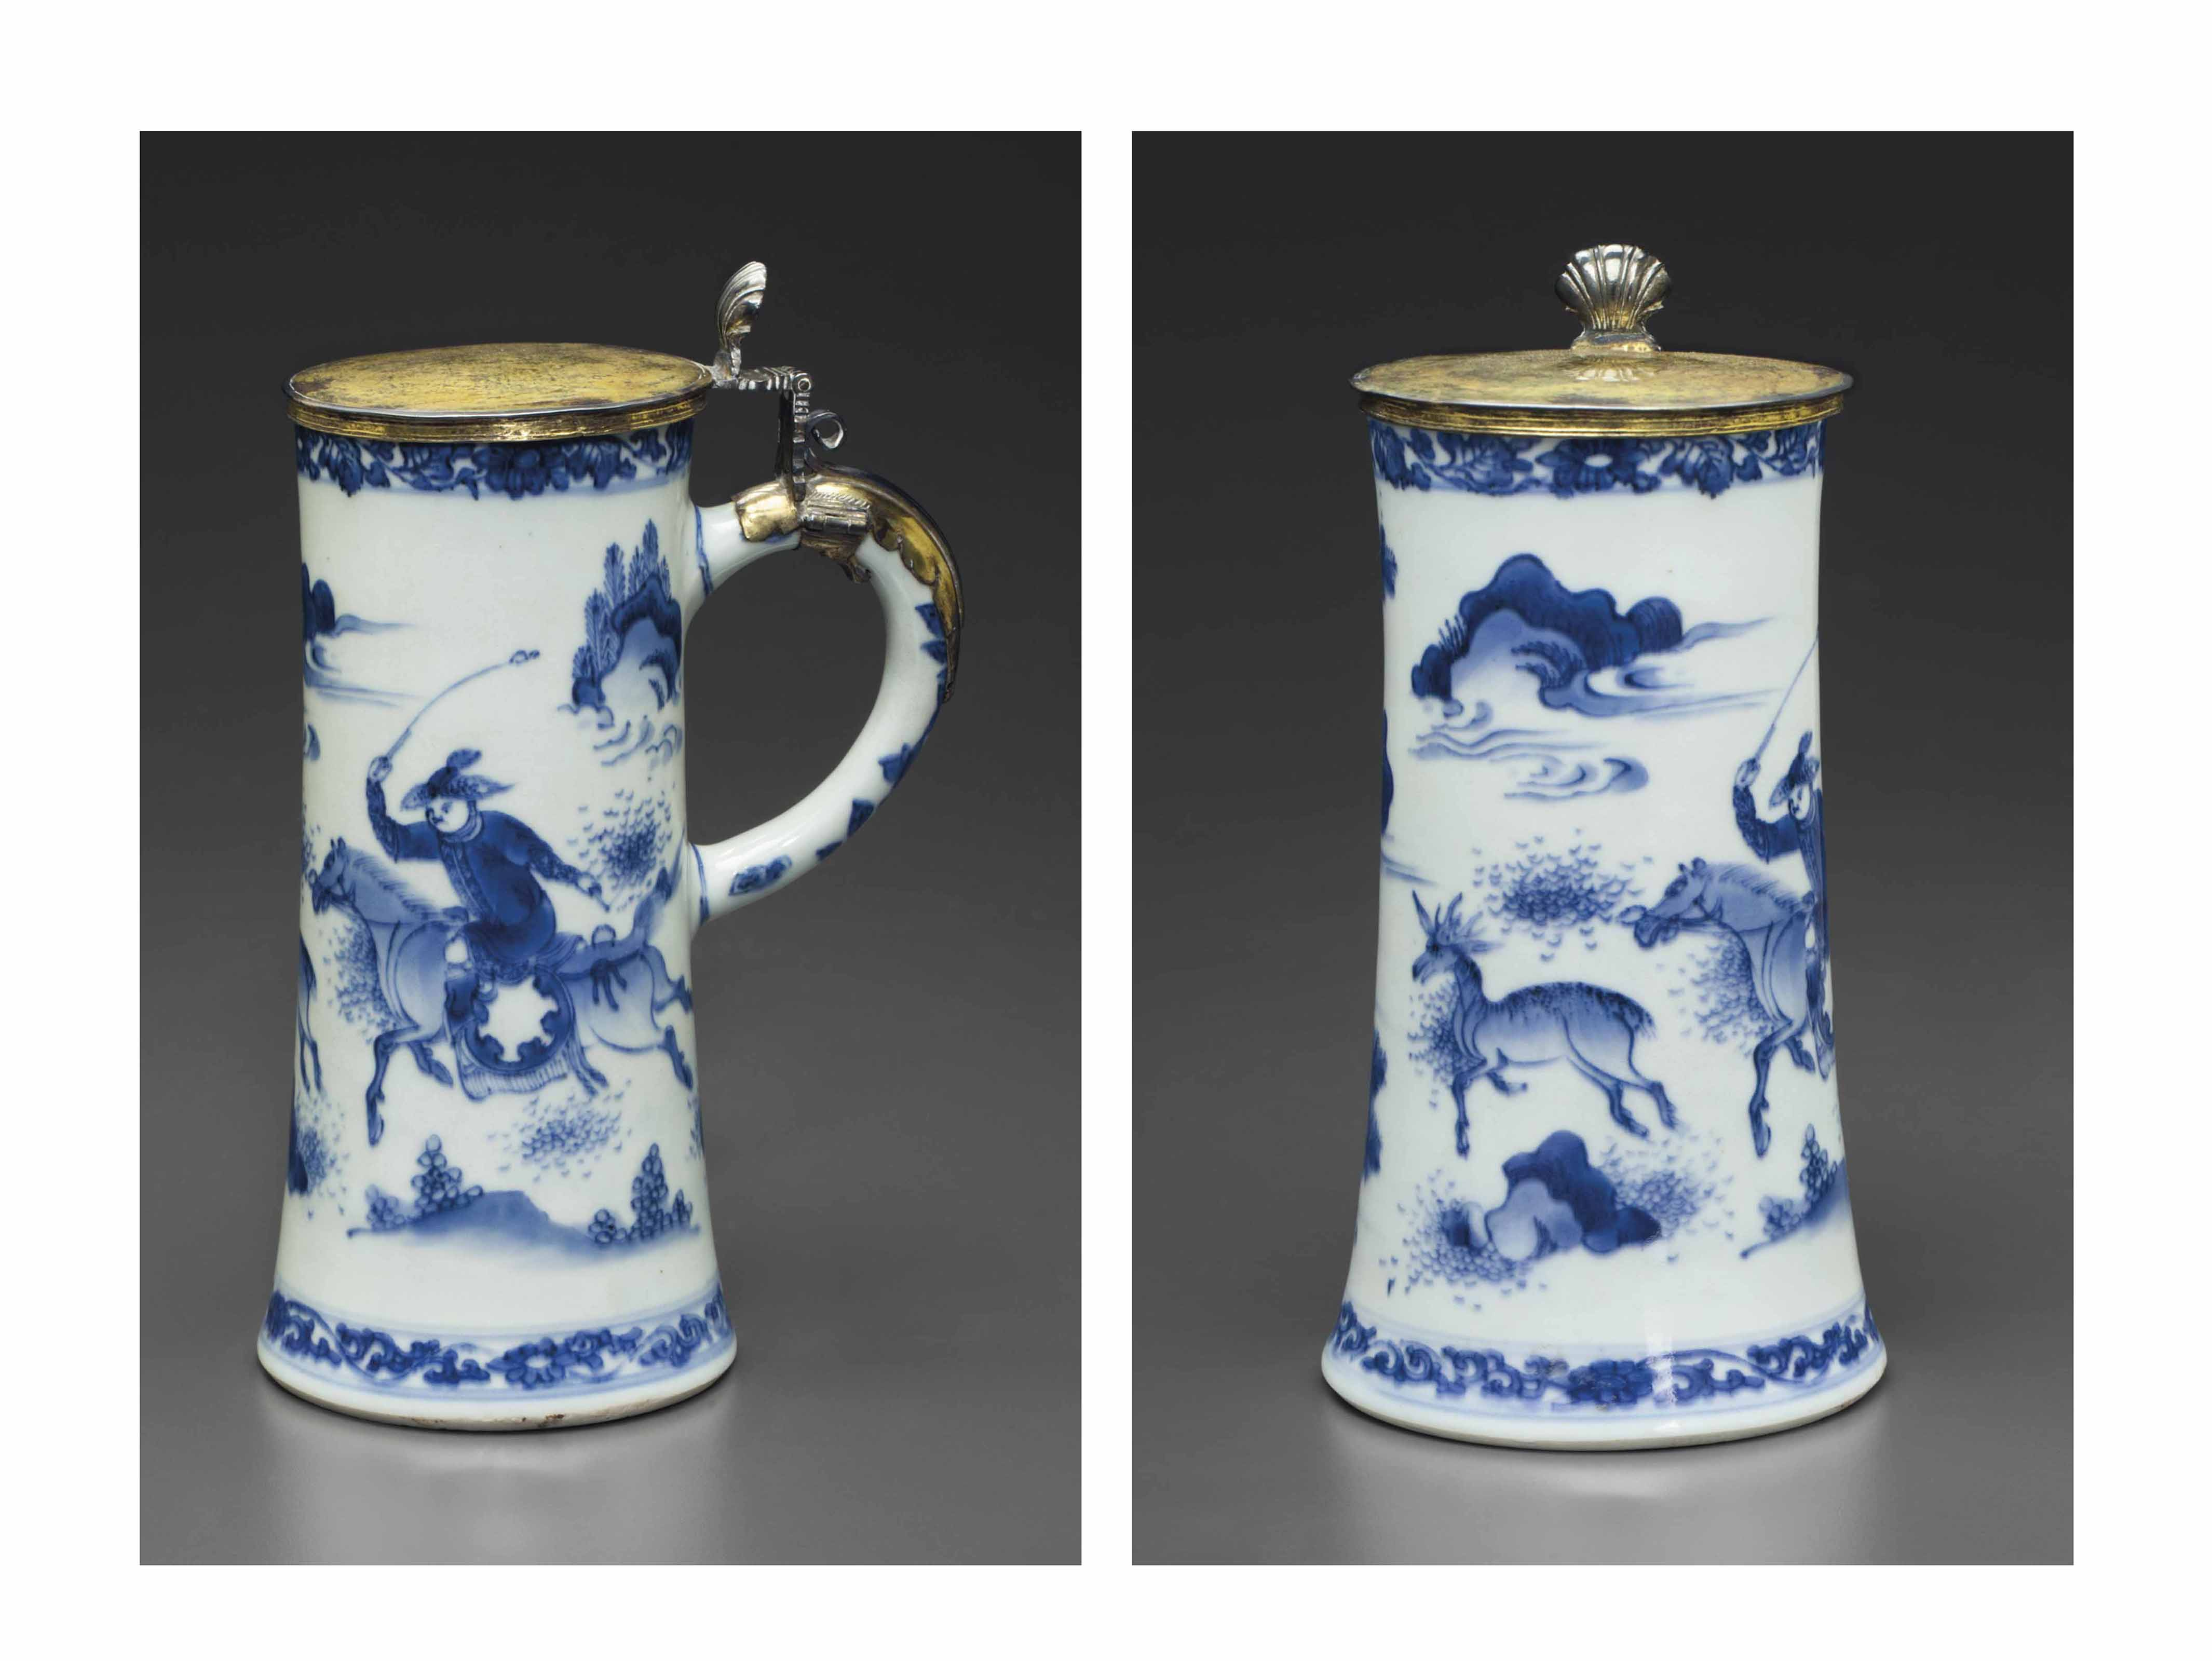 A SILVER-GILT-MOUNTED BLUE AND